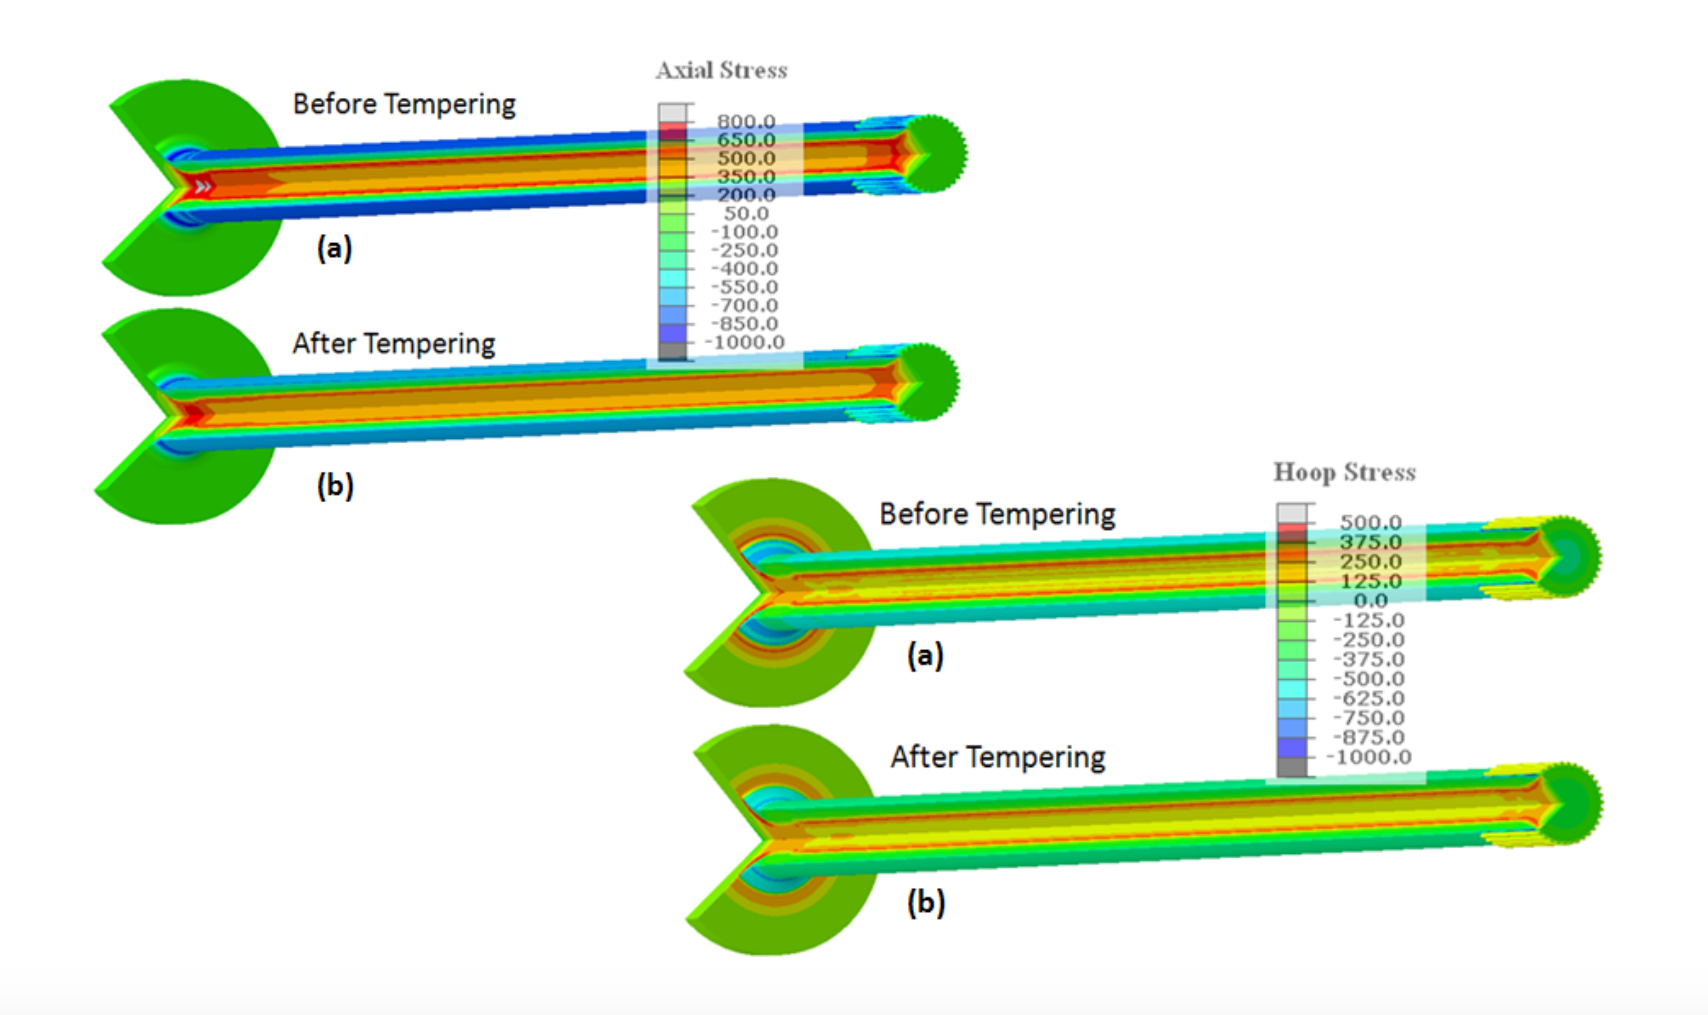 Fluxtrol | Integrated Computational Development of Induction Heat Treatment Process for Automotive Axle Shafts Figure 10 - Effect of Tempering on Residual Stresses